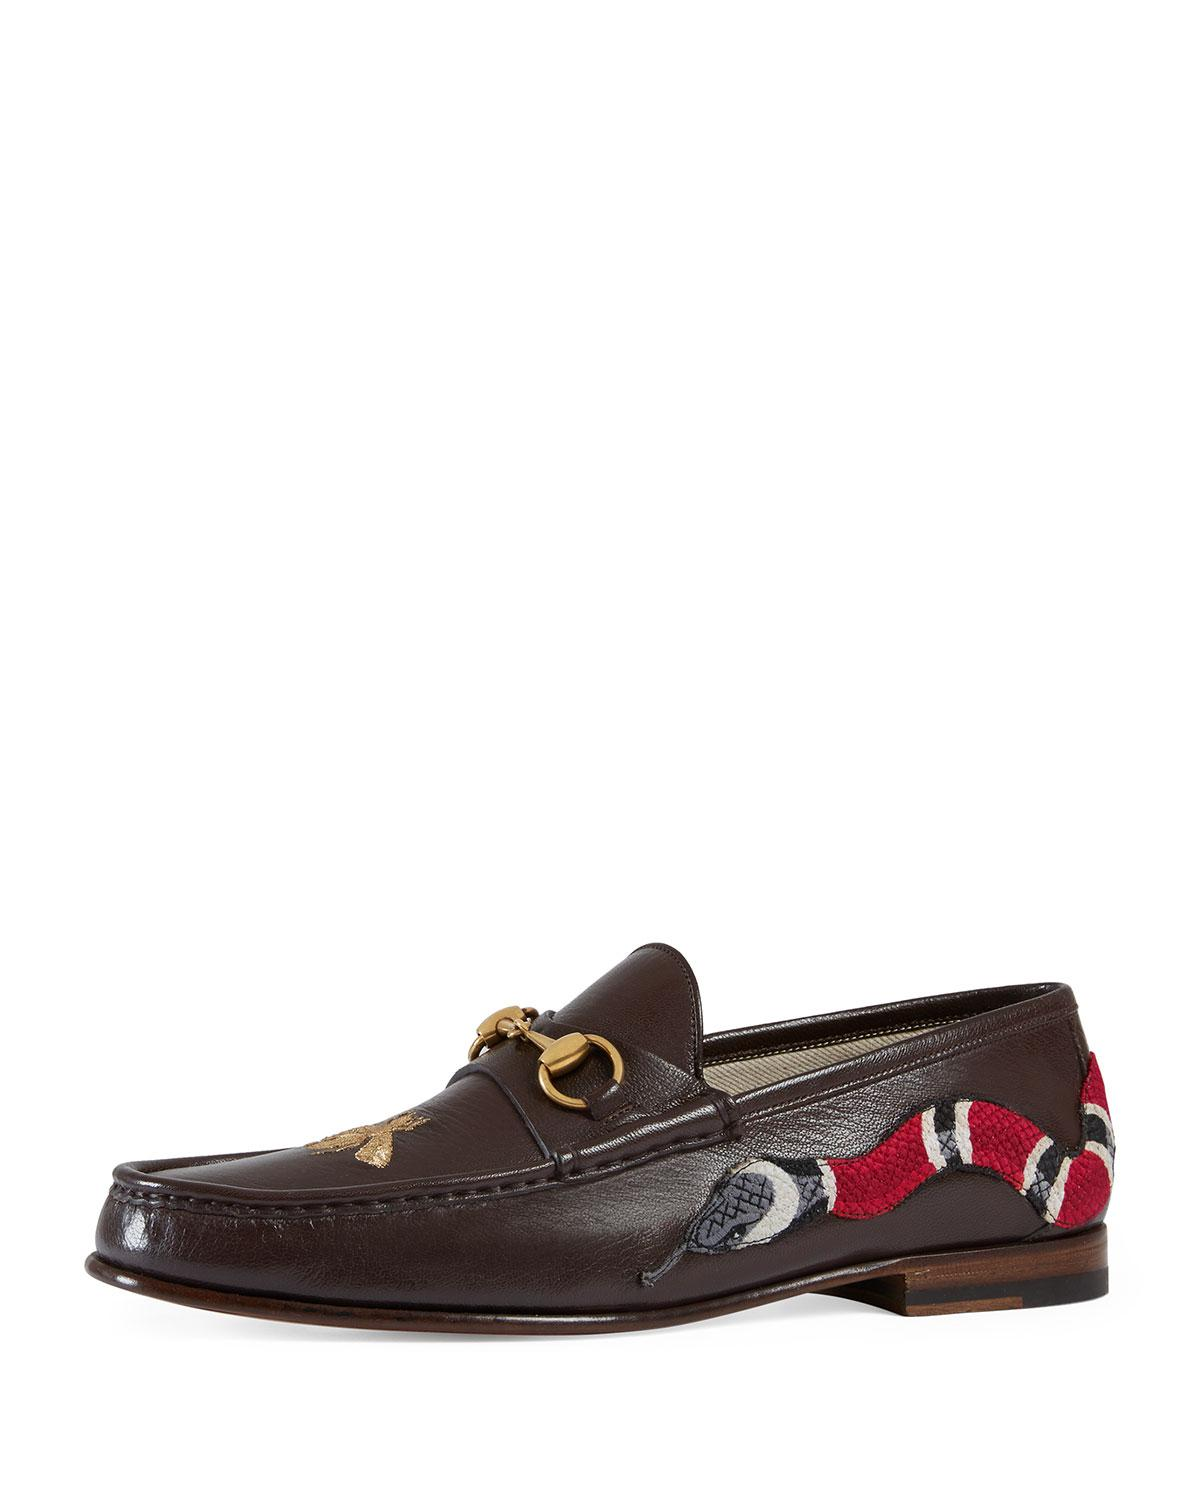 827b53726d59 Snake Loafer Men Moccasin With Leather Lyst Gucci For In Roos Brown qnAwIIpY